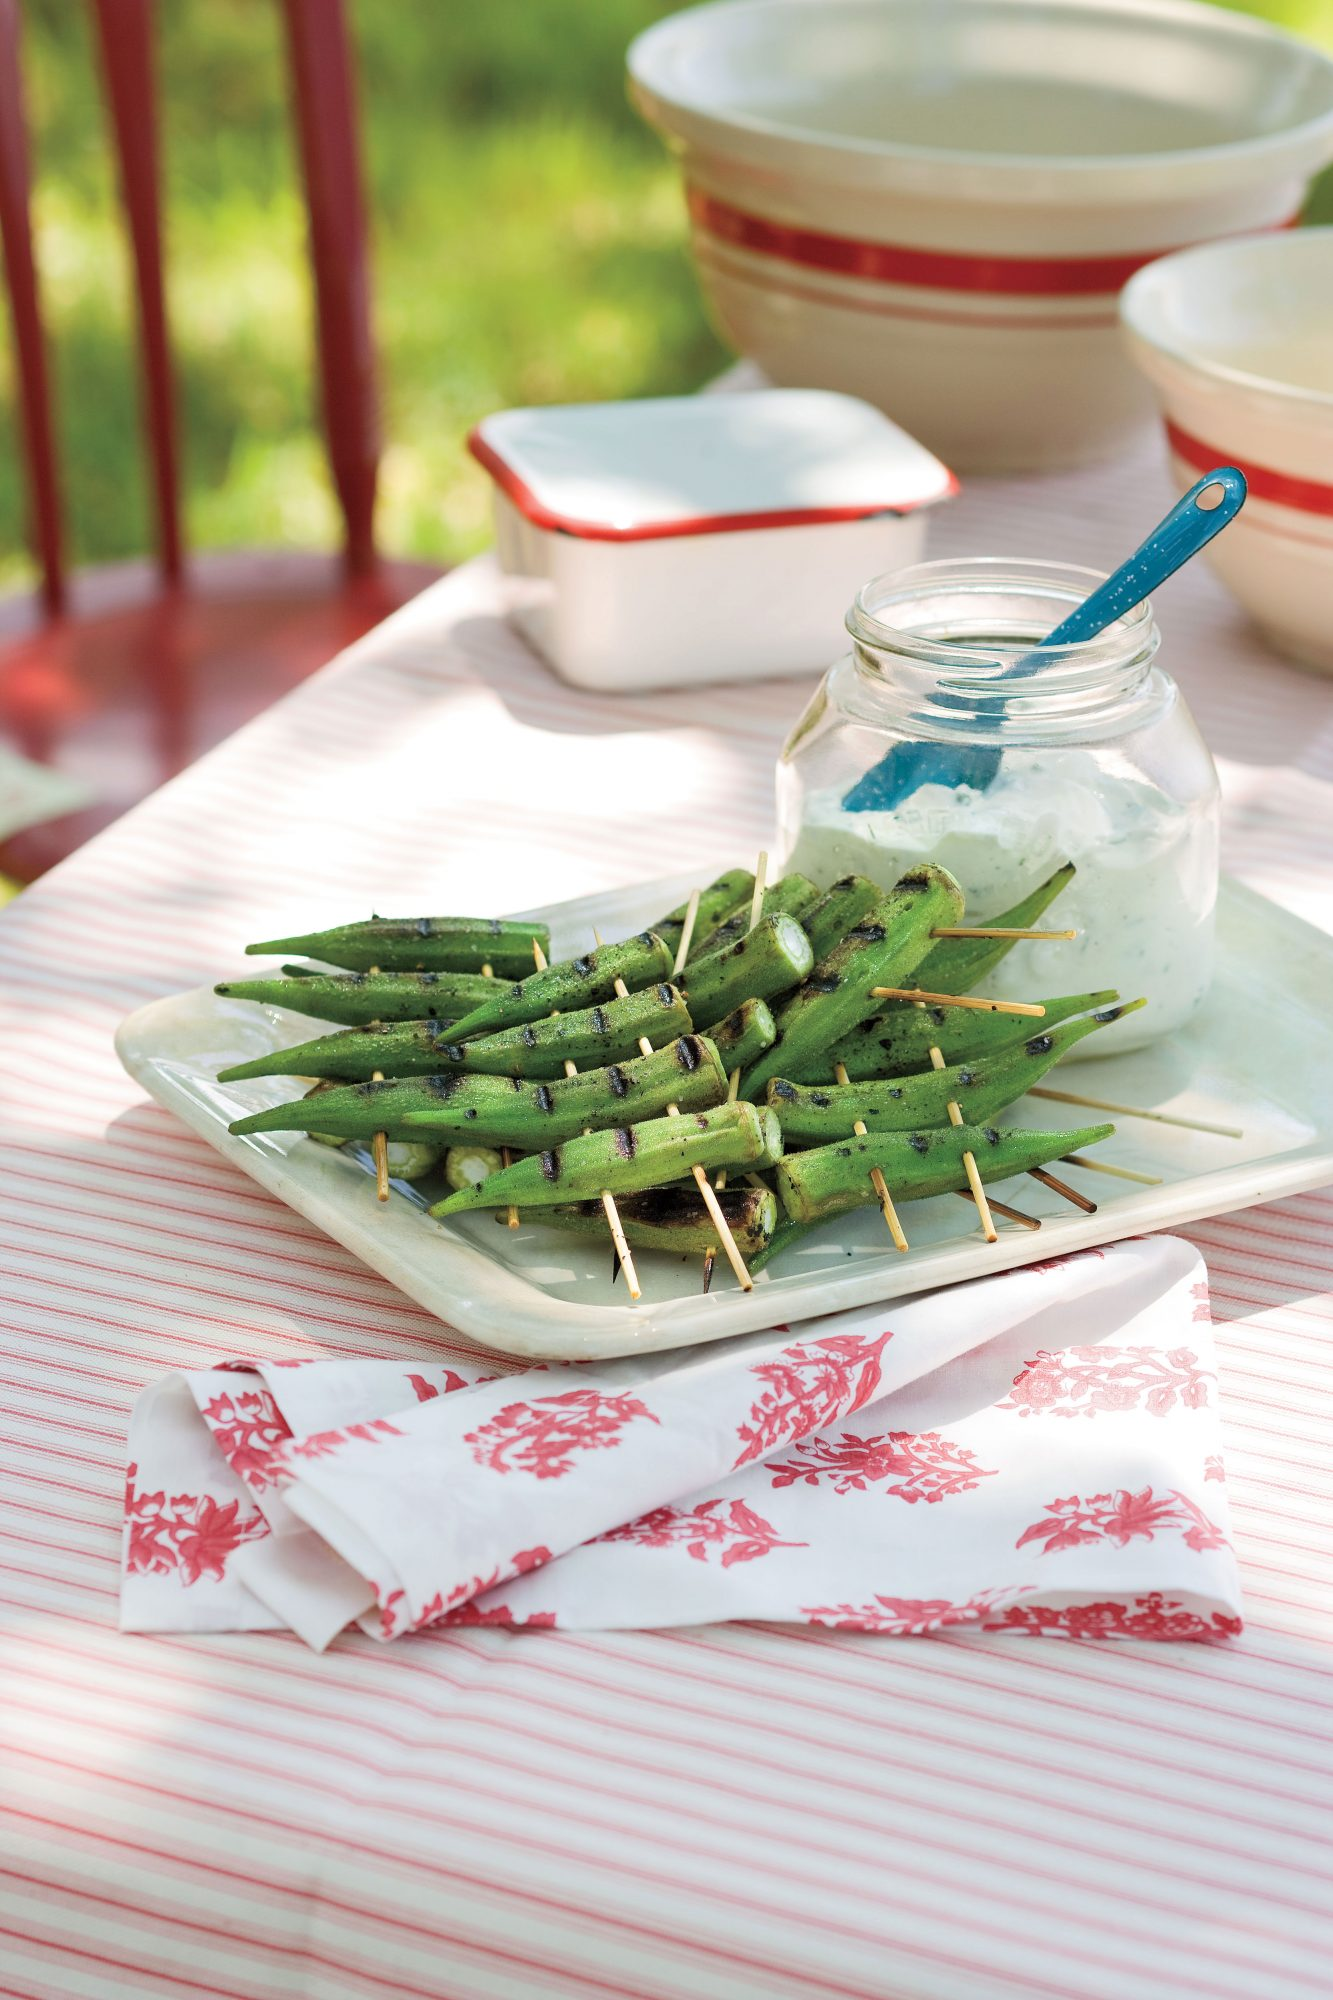 Peppery Grilled Okra with Lemon-Basil Dipping Sauce